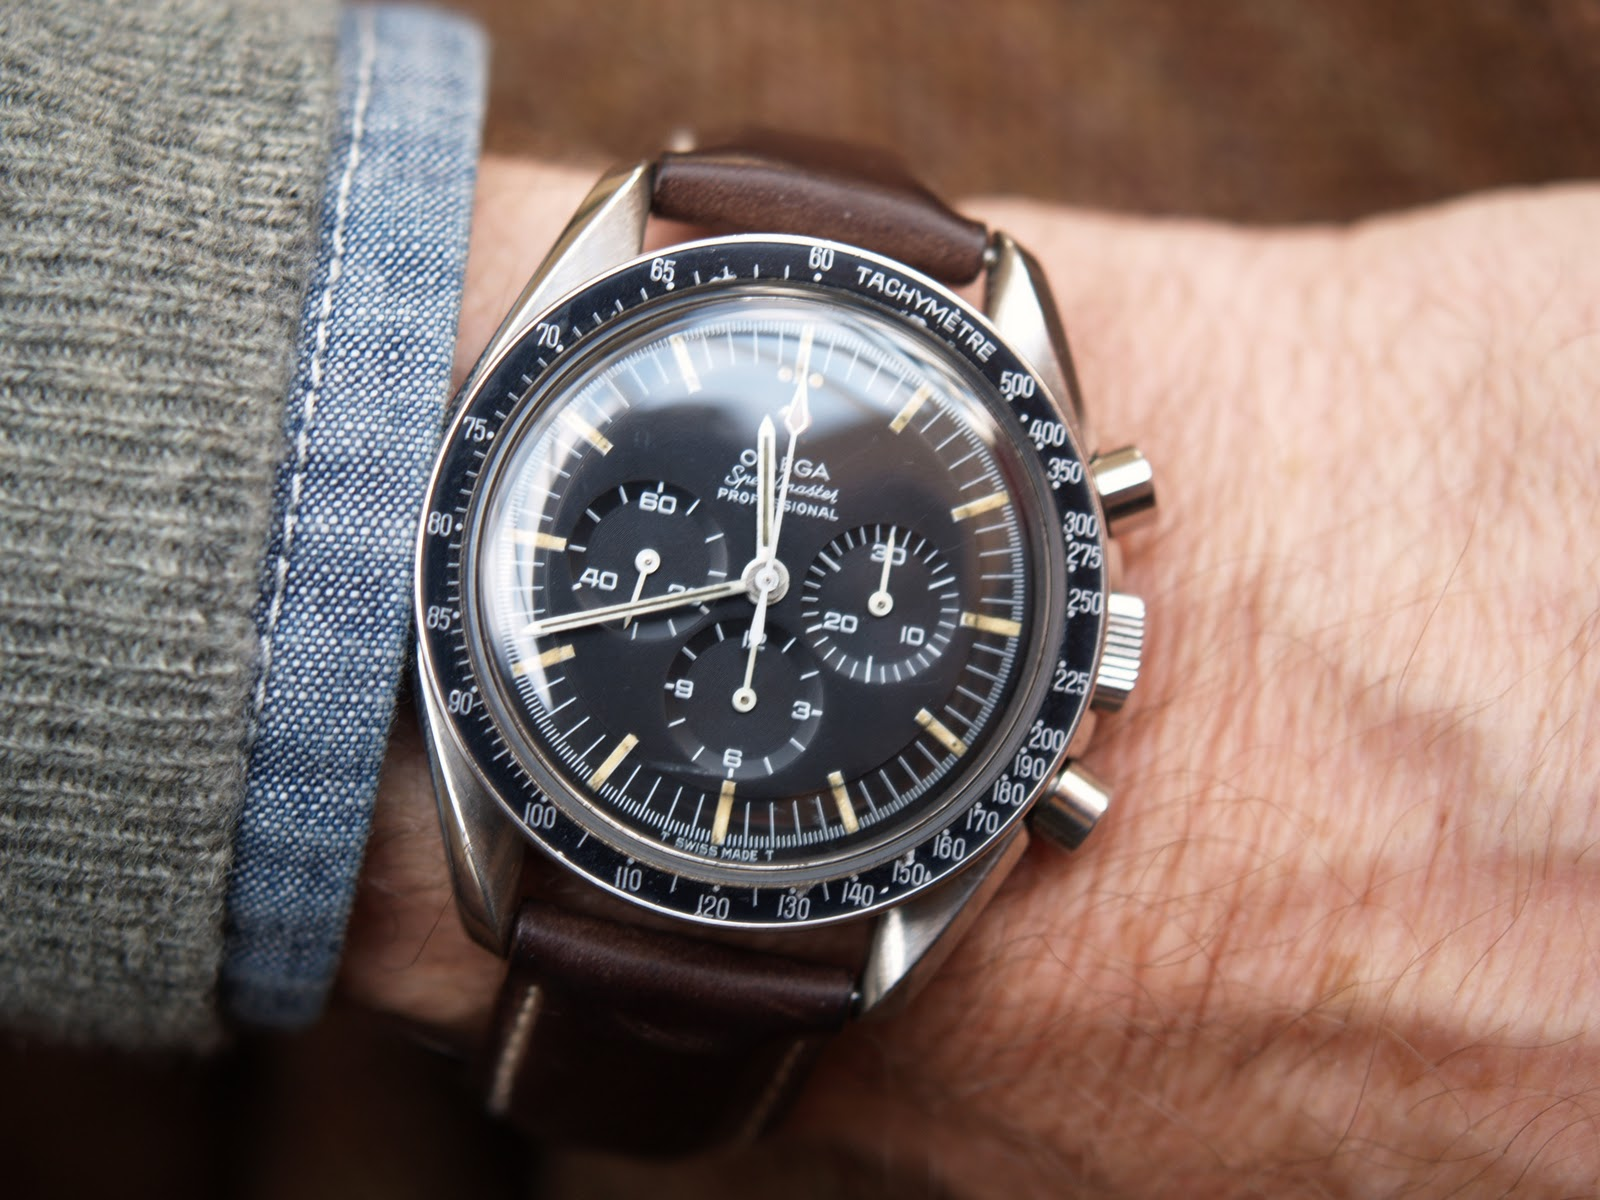 Vintage Wrist Watches Omega Speedmaster History And Technology